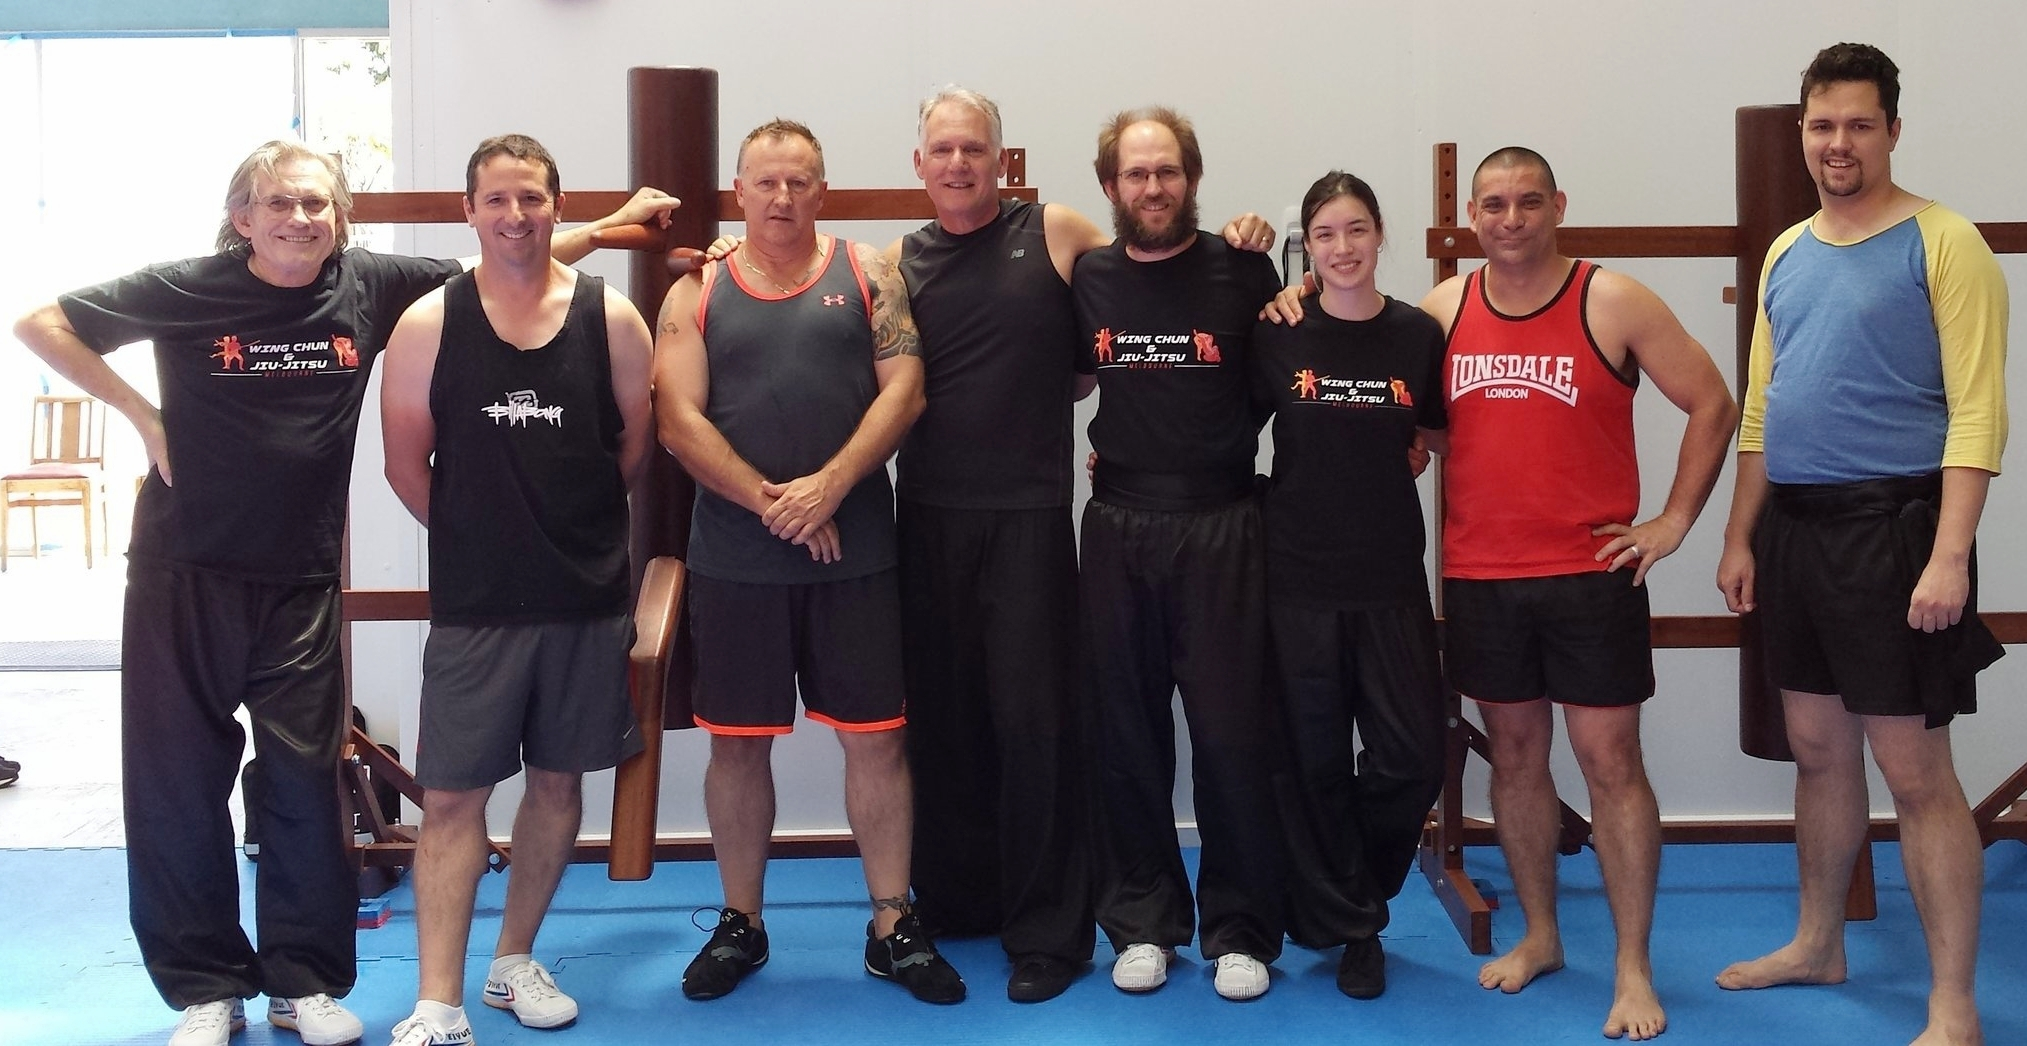 Our first class at Wing Chun & Jiu-Jitsu Melbourne on the 6th January 2018.